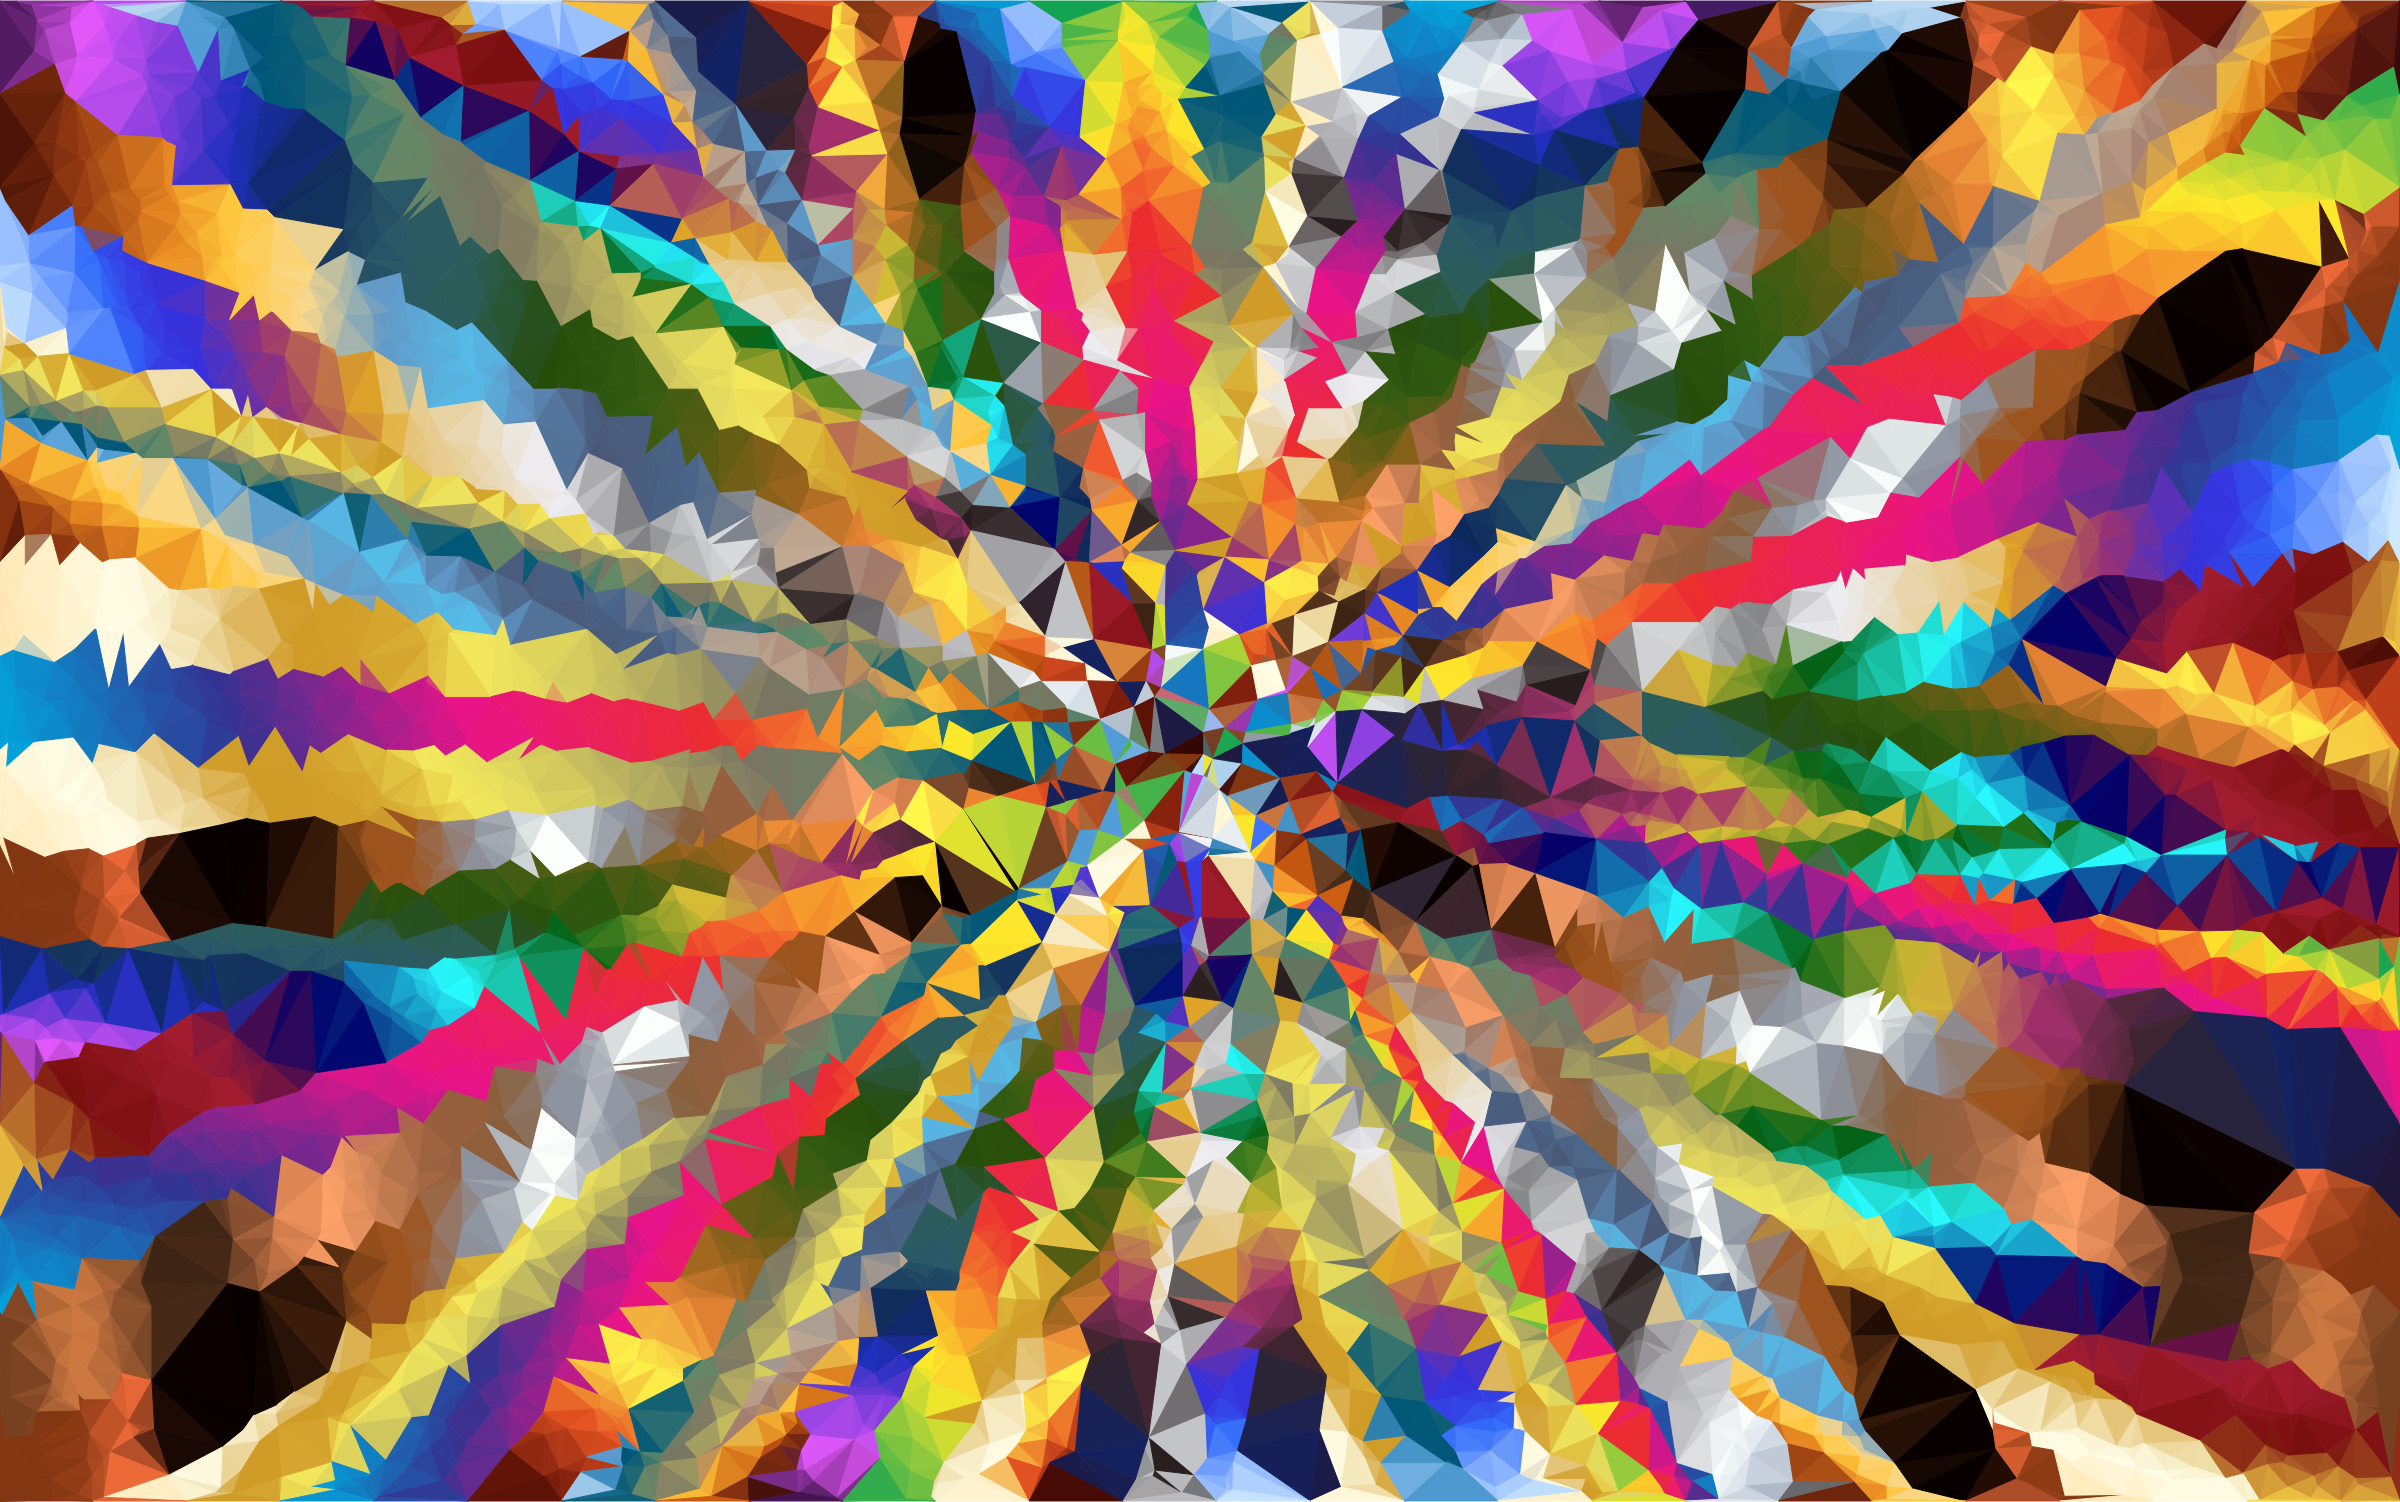 Low Poly Psychedelic Starburst Background by GDJ